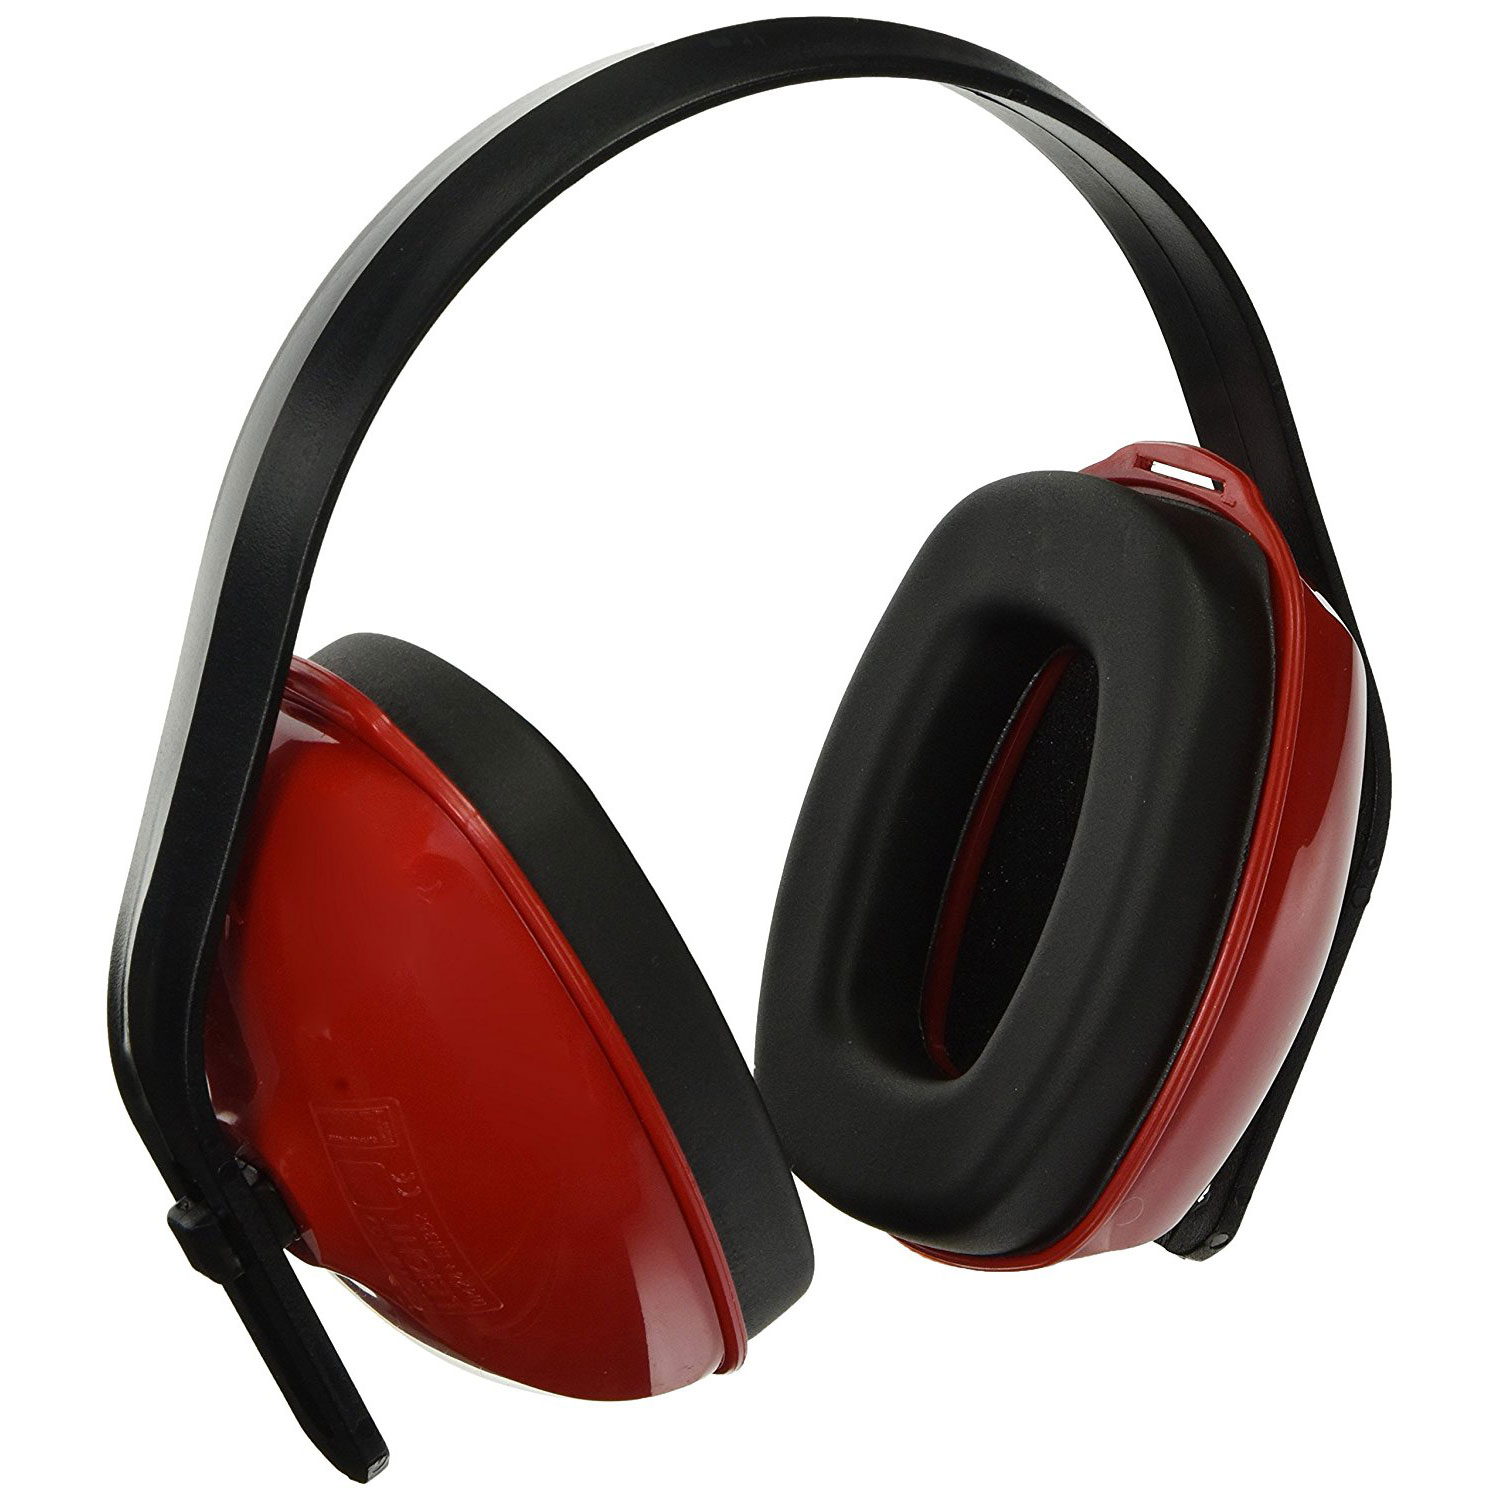 Honeywell QM24PLUS Hearing protector with ability to be worn in multiple positions - RWS-53010